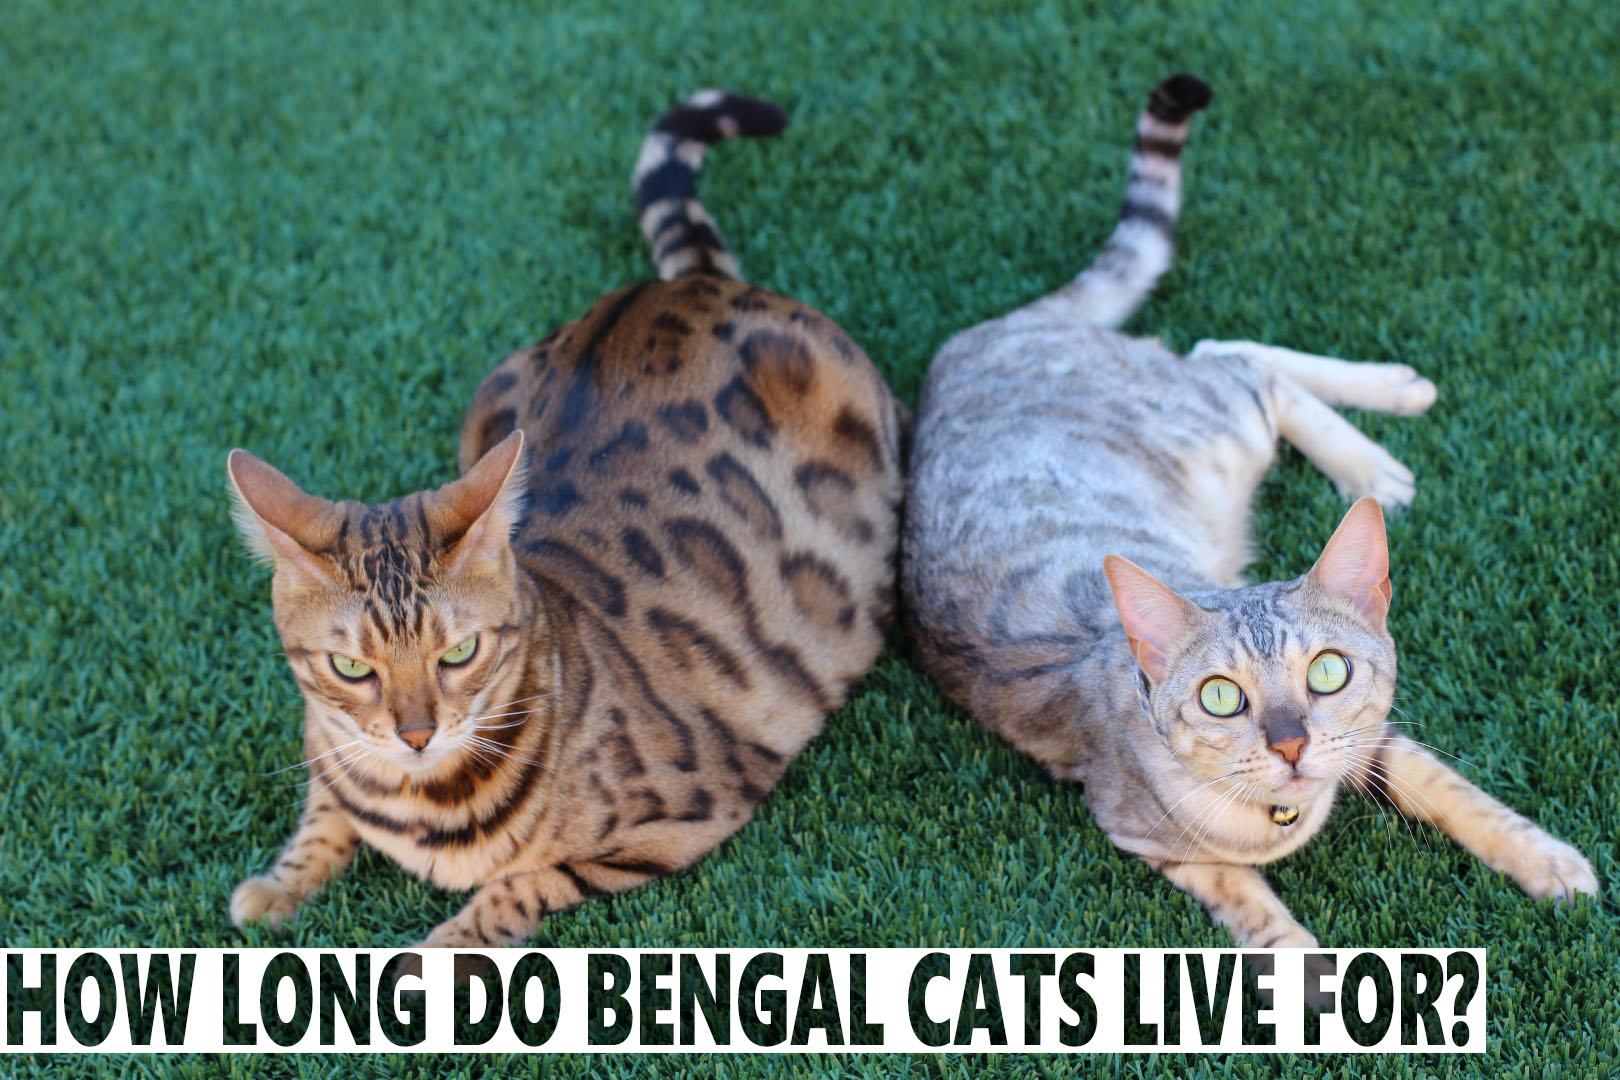 How long can a bengal cat live